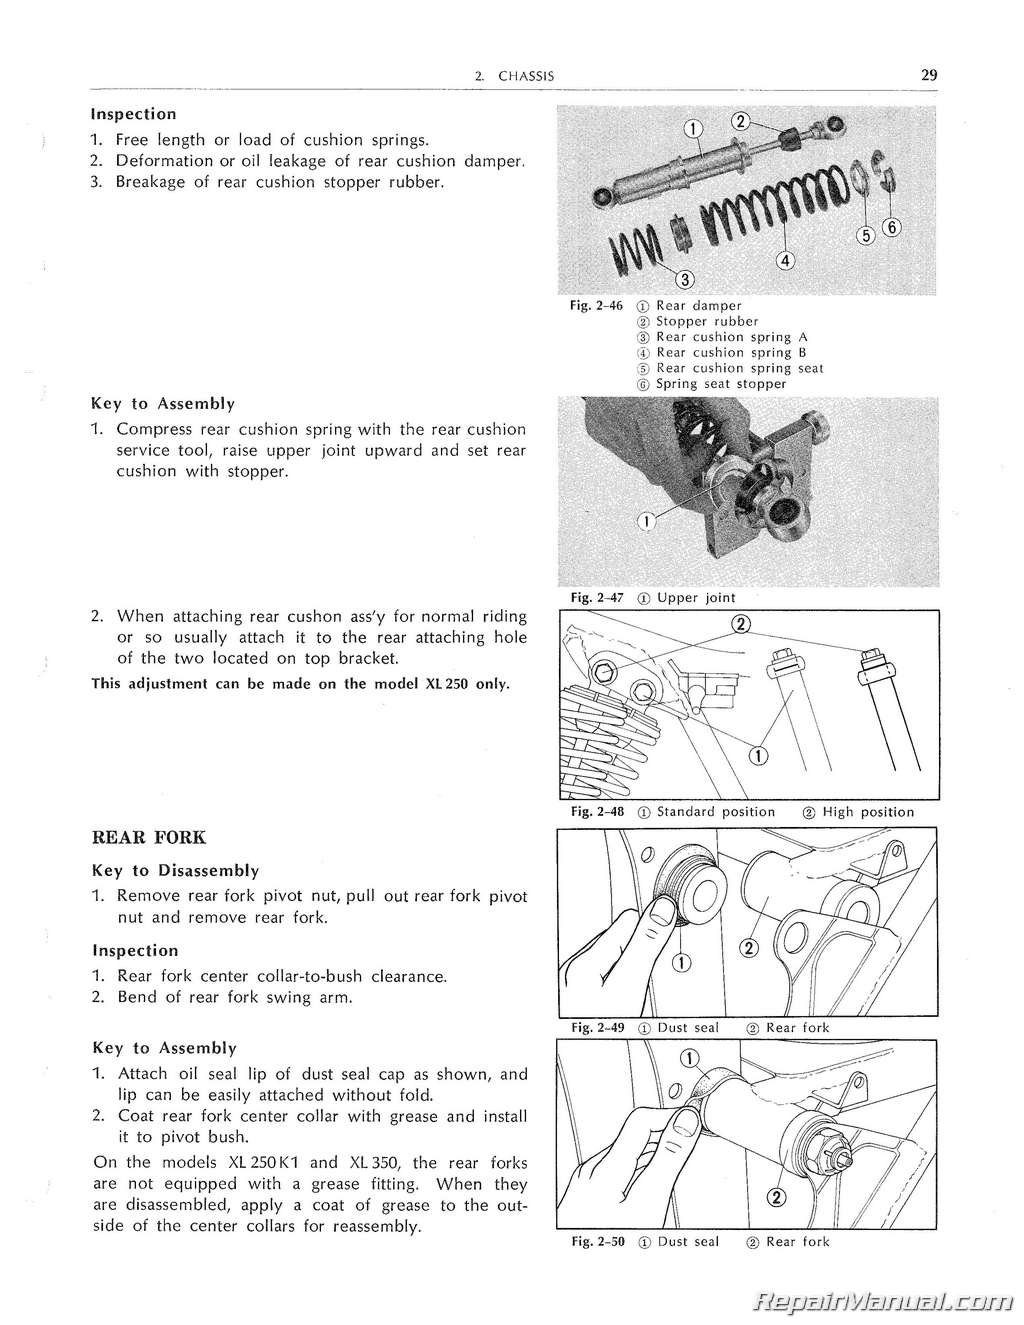 Honda Xl250 Xl350 Service Manual